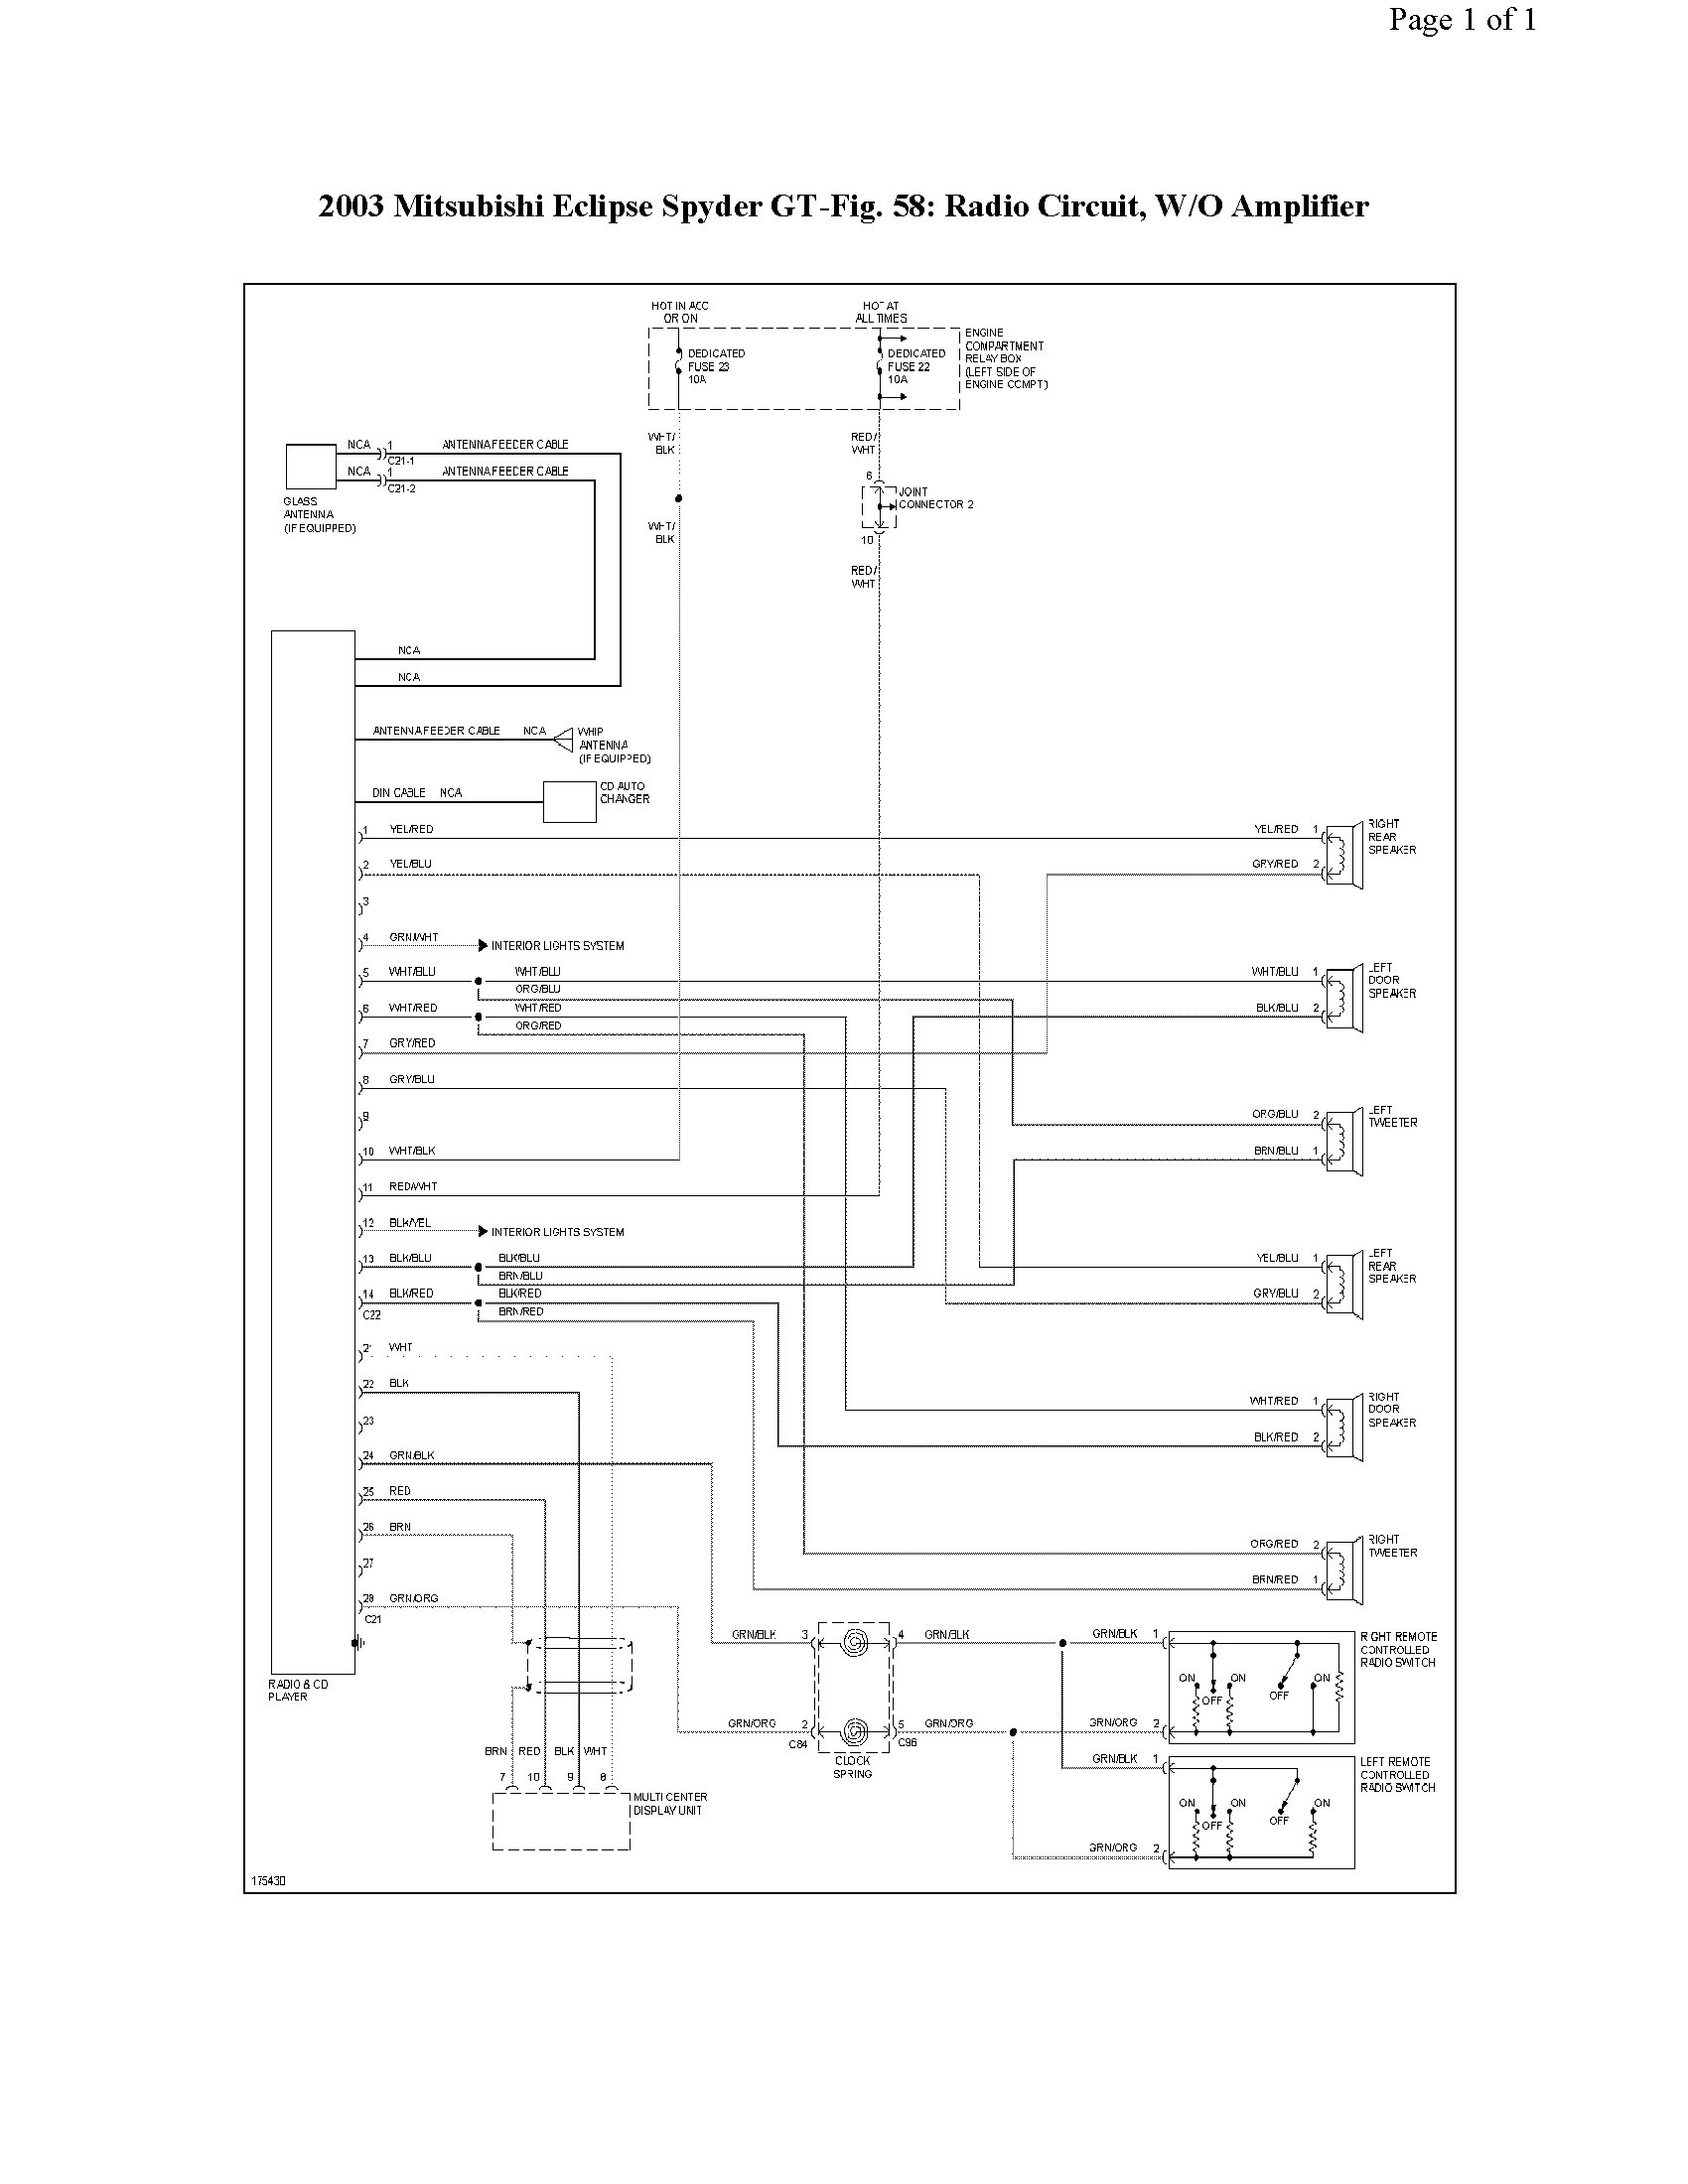 2001 Mitsubishi Eclipse Engine Diagram Wiring Diagram Moreover 2001 Mitsubishi Eclipse Radio Wiring Diagram Of 2001 Mitsubishi Eclipse Engine Diagram